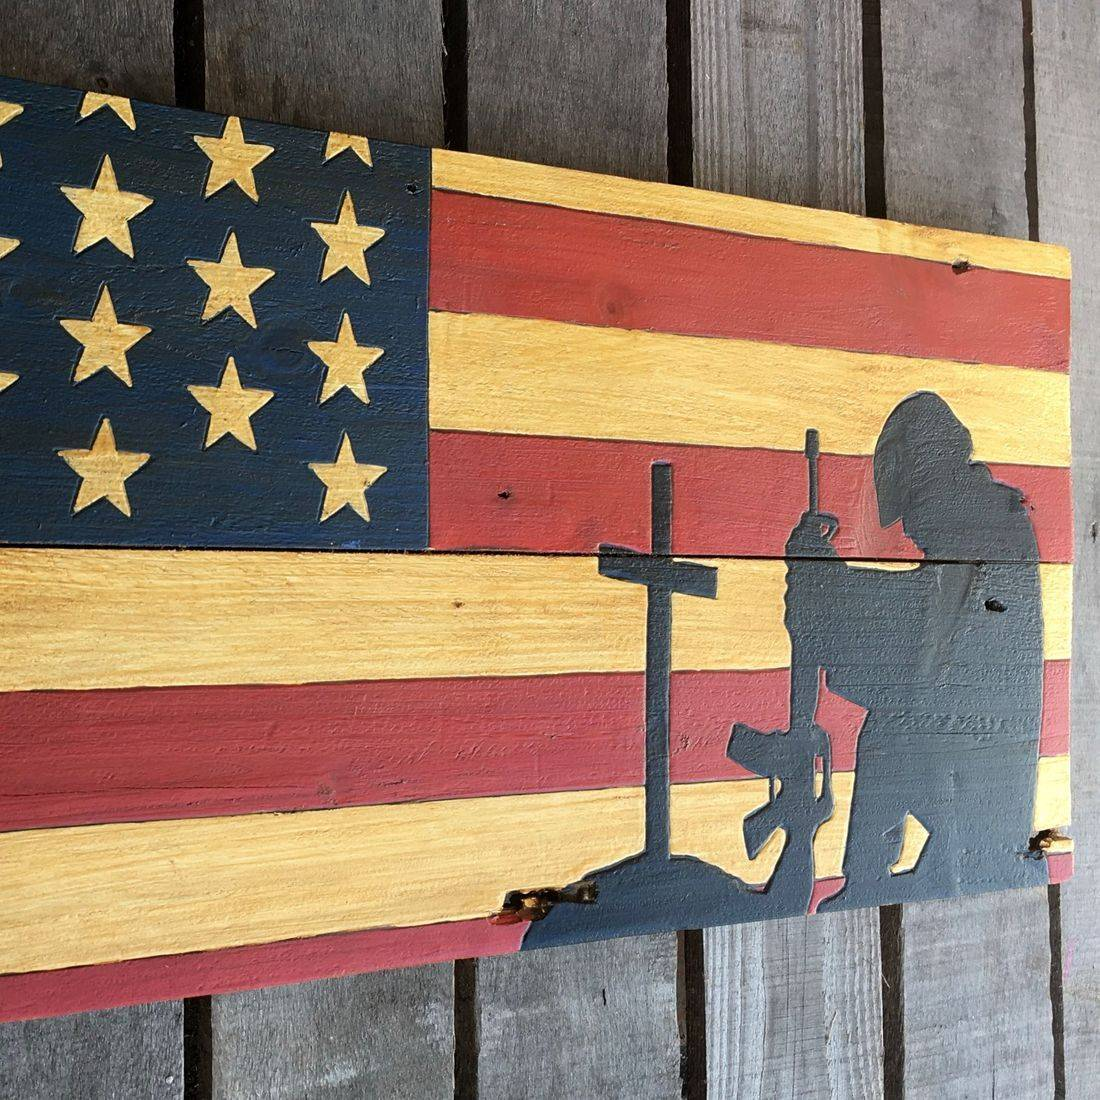 USA Handmade Reclaimed Pallet Wood American Military Army Flag Art